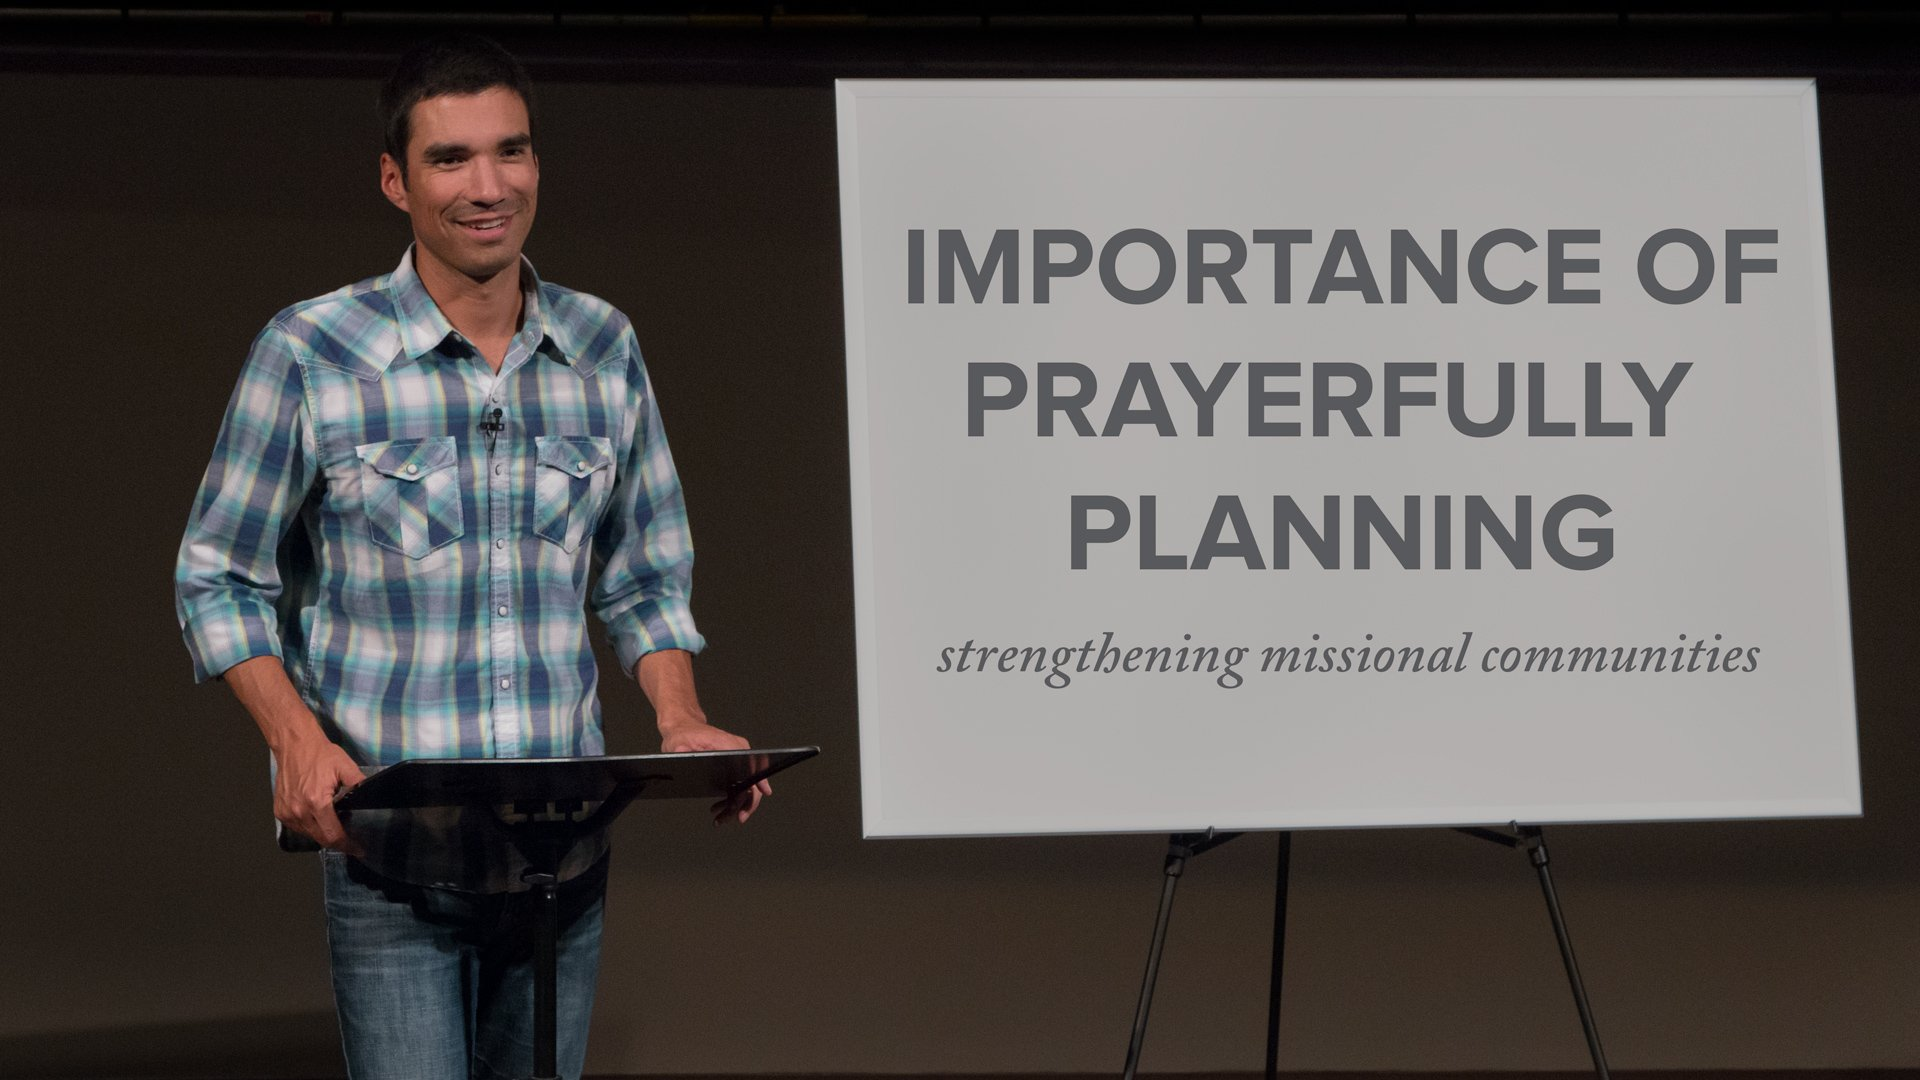 Importance of Prayerfully Planning